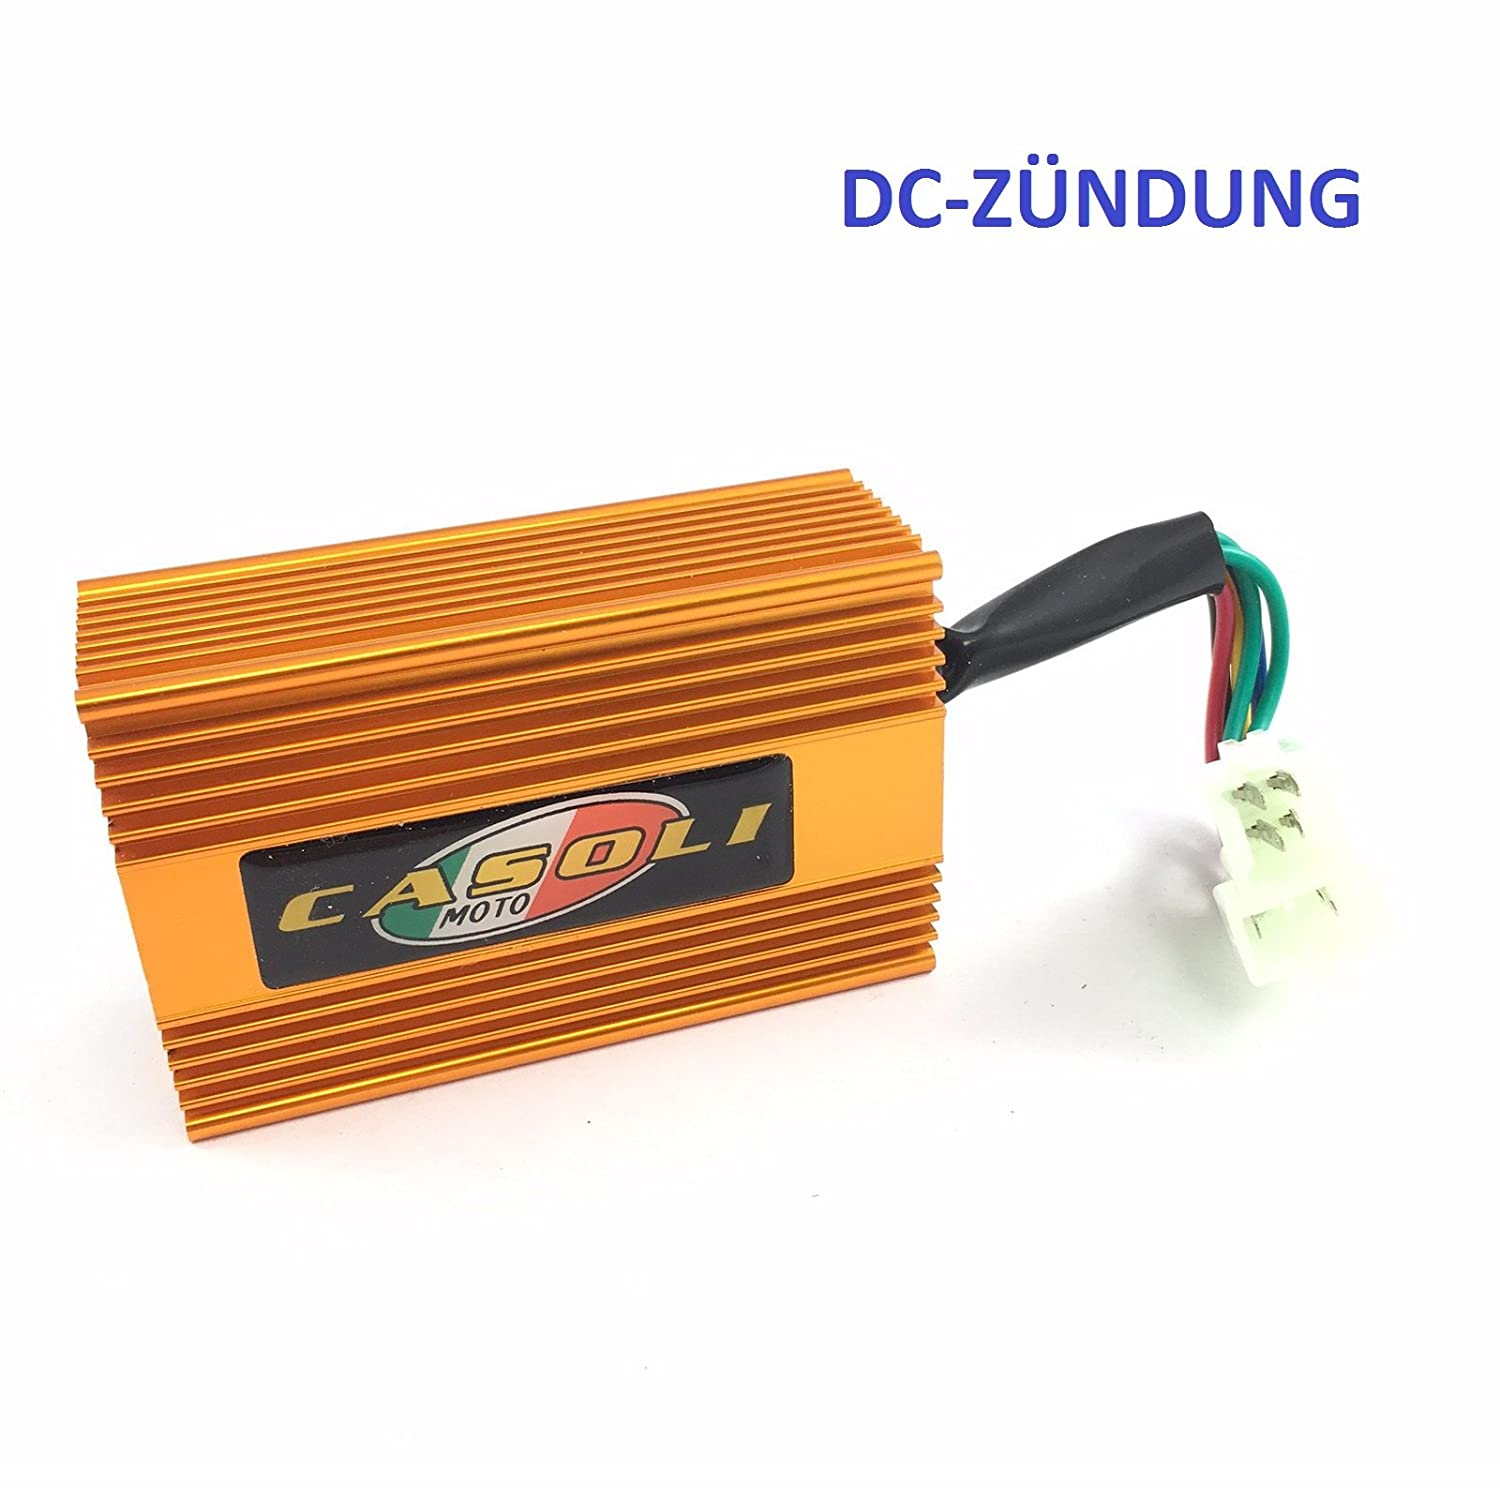 High Performance Tuning Dc Cdi 6pin No Rev Limit Scooter Wiring Diagram Chinese Dunebuggy 250cc Gy6 Engine Unrestricted Rpm 4 Stroke 125 Moped Atv Taotao Roketa Tank Jonway